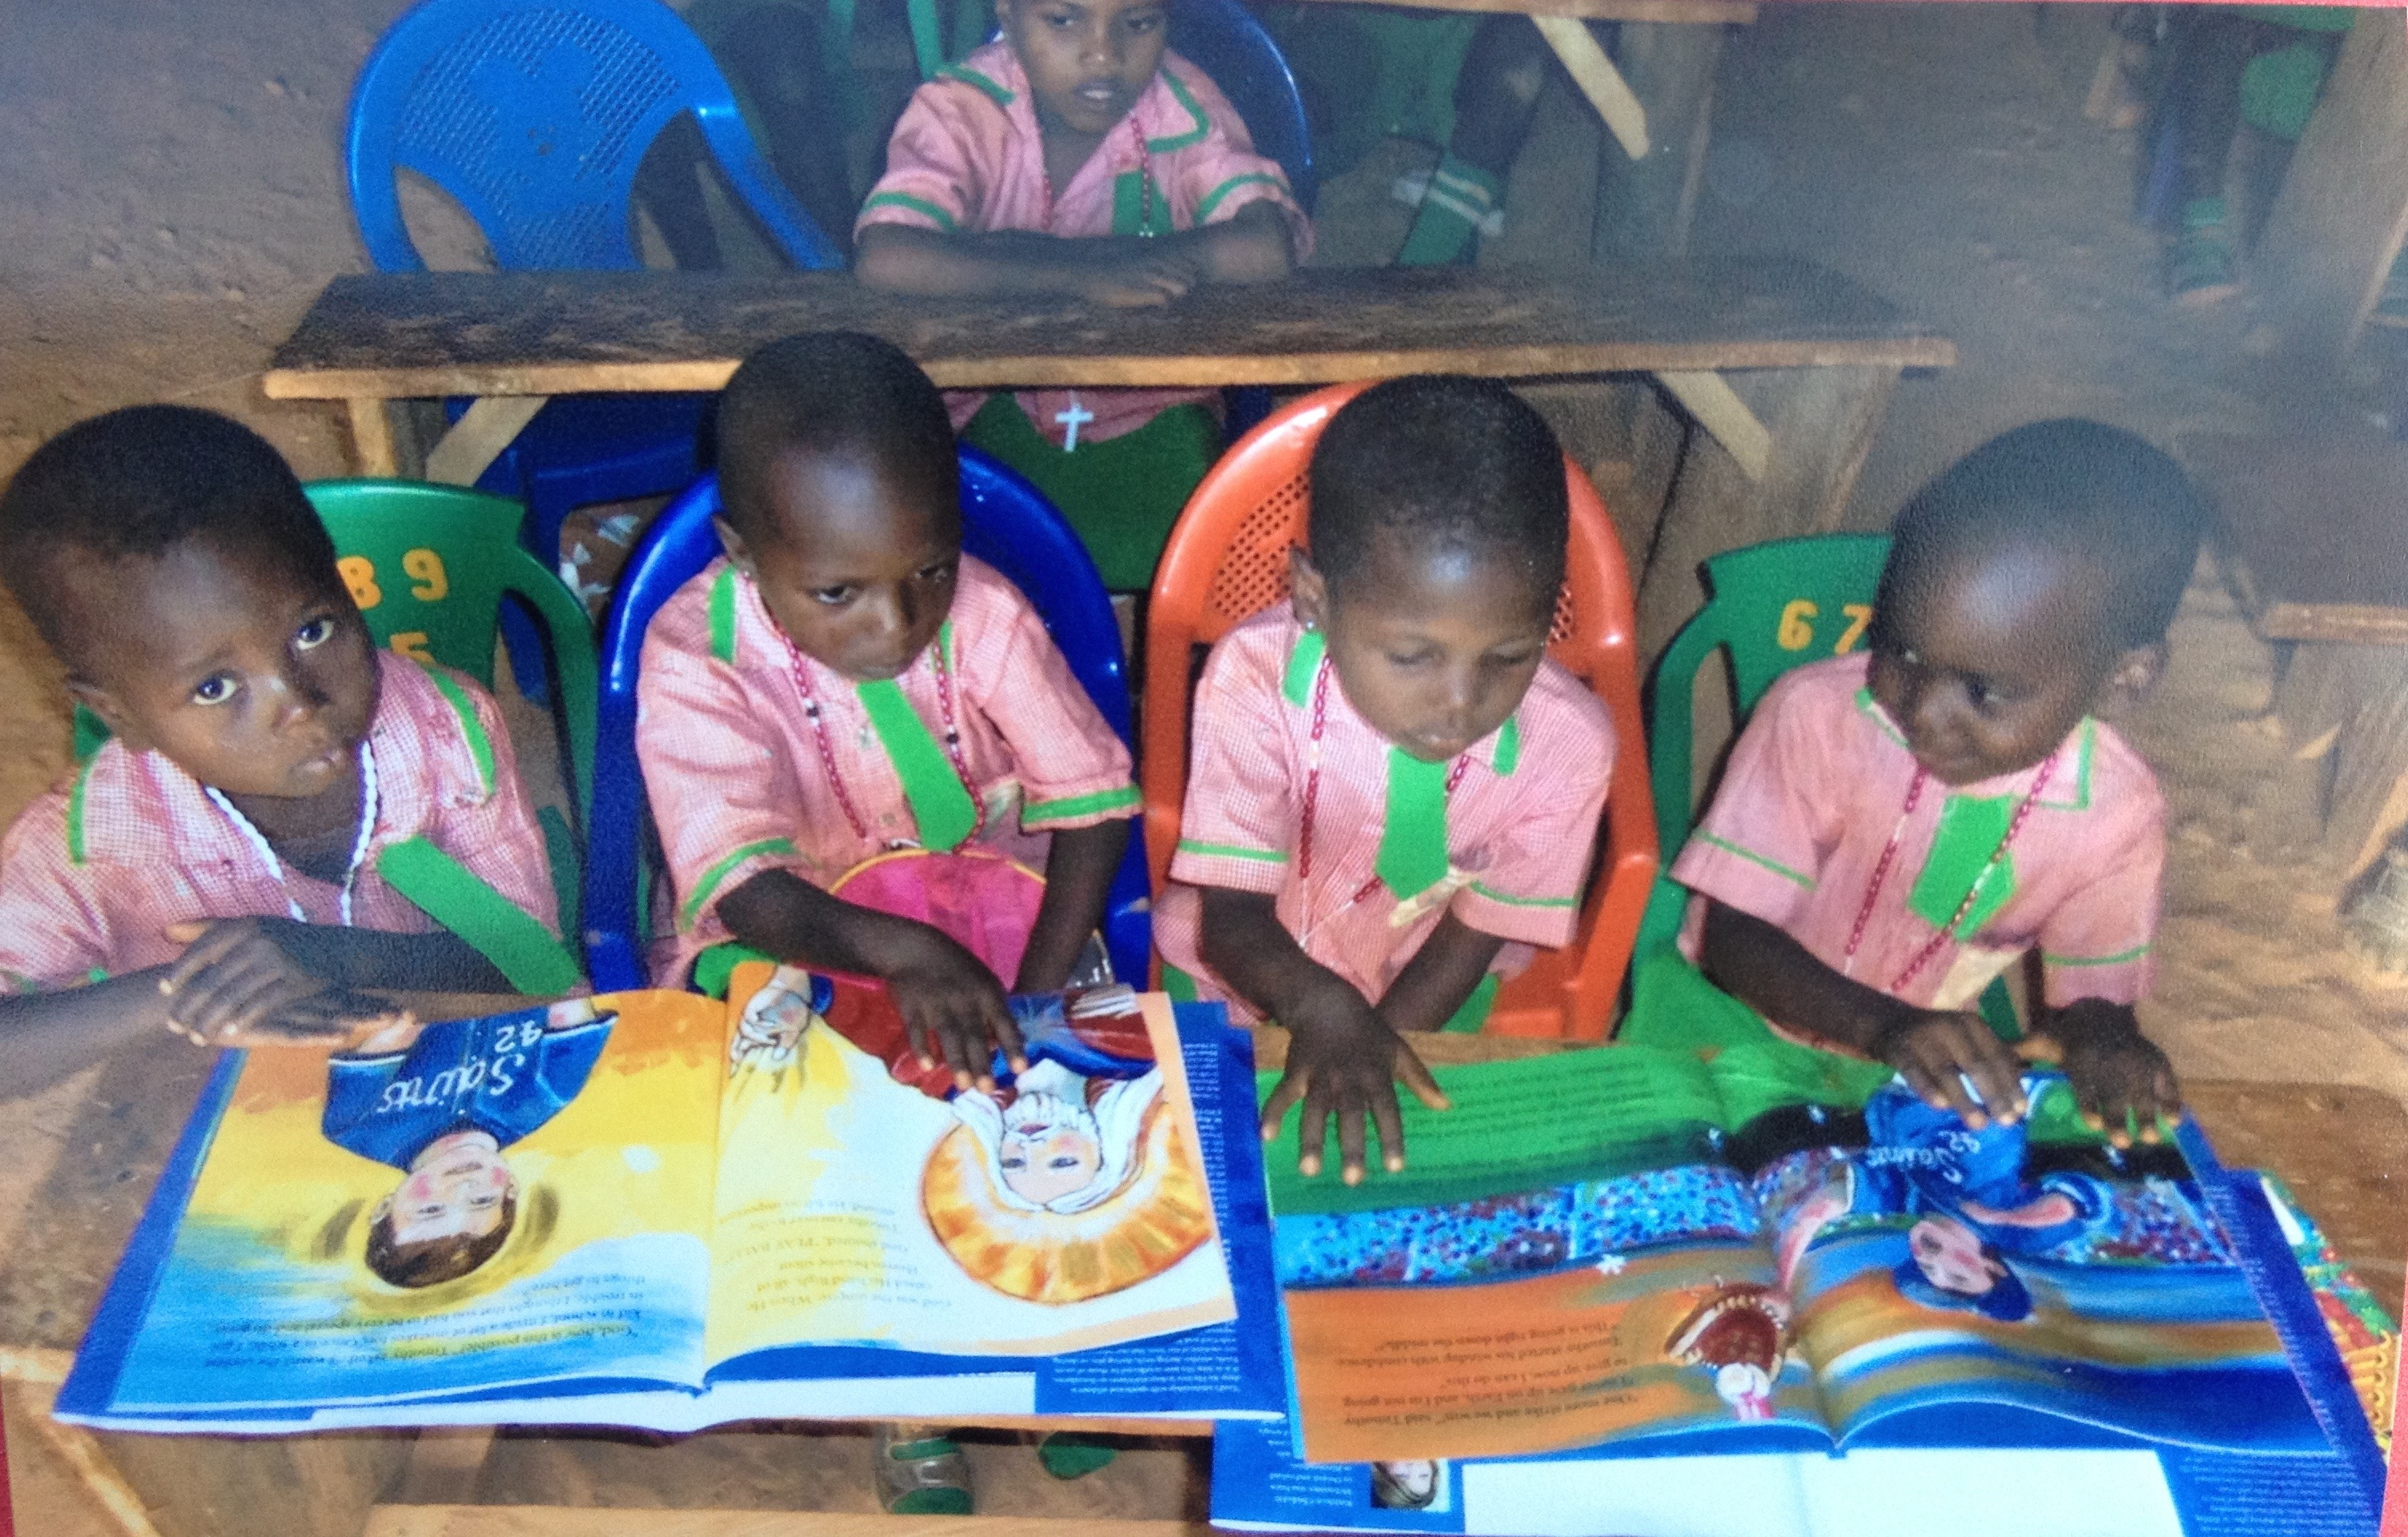 CHILDREN READING, NIGERIA, AFRICA